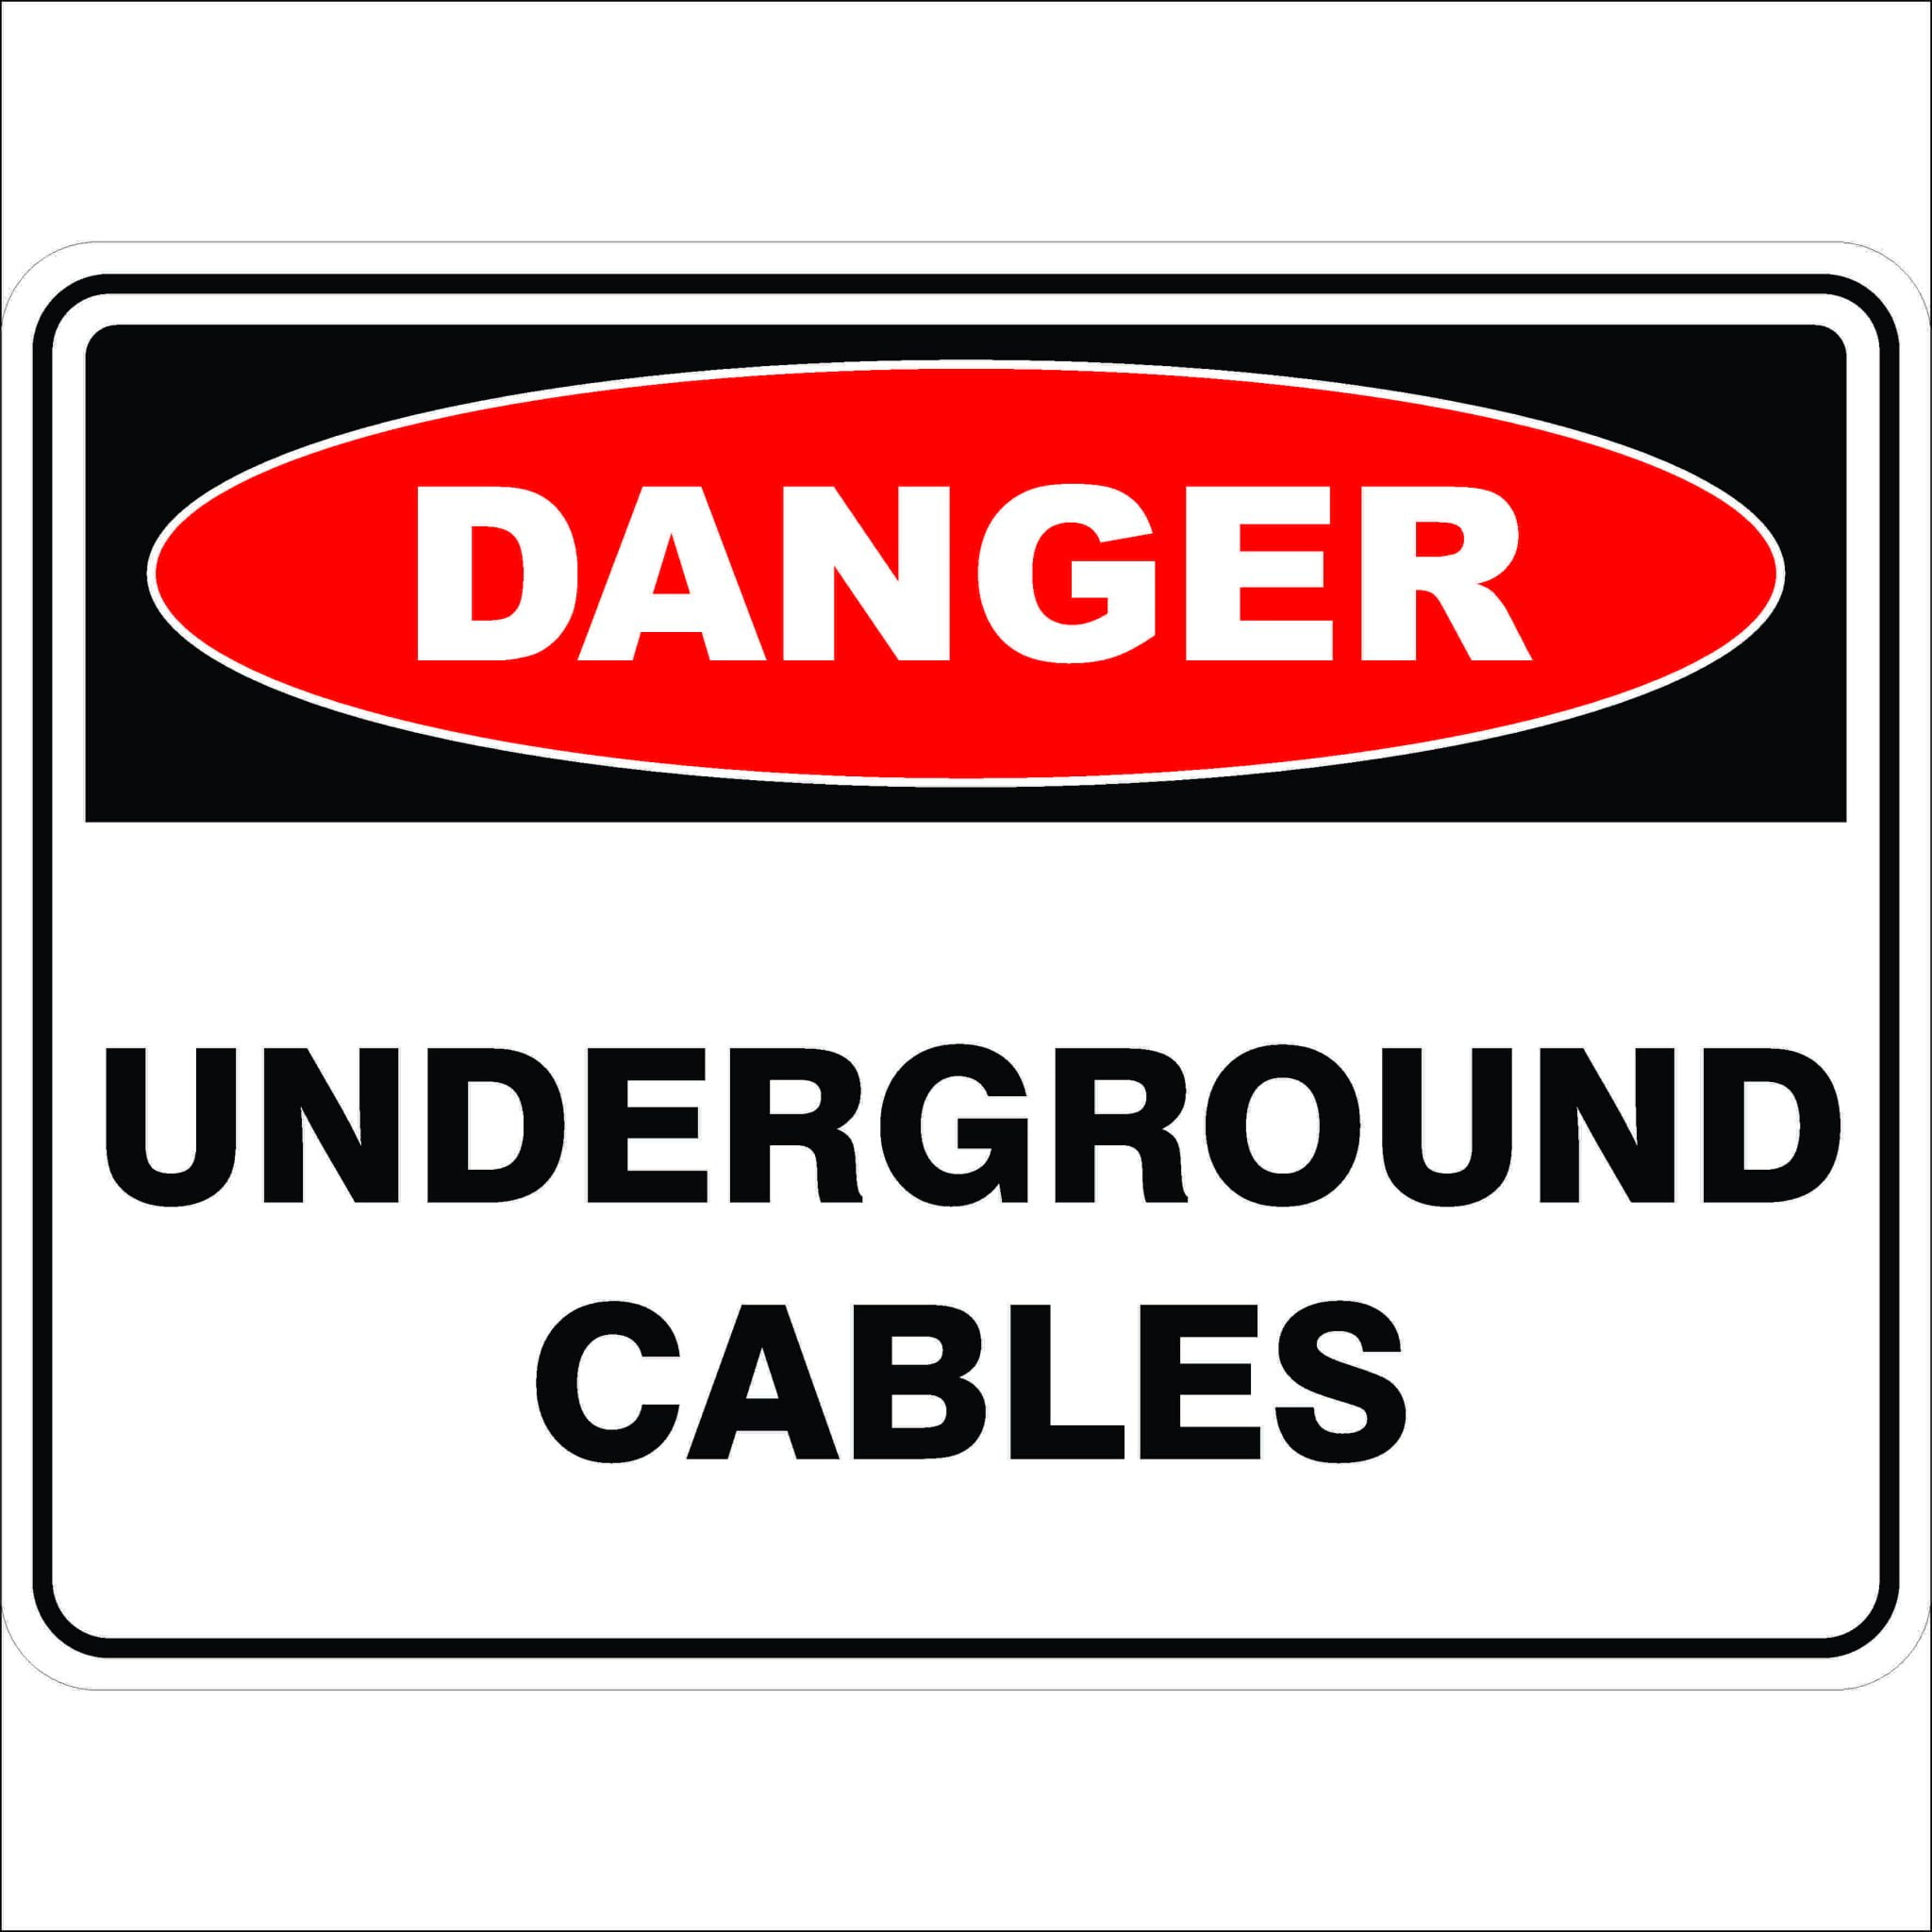 Danger Signs UNDERGROUND CABLES